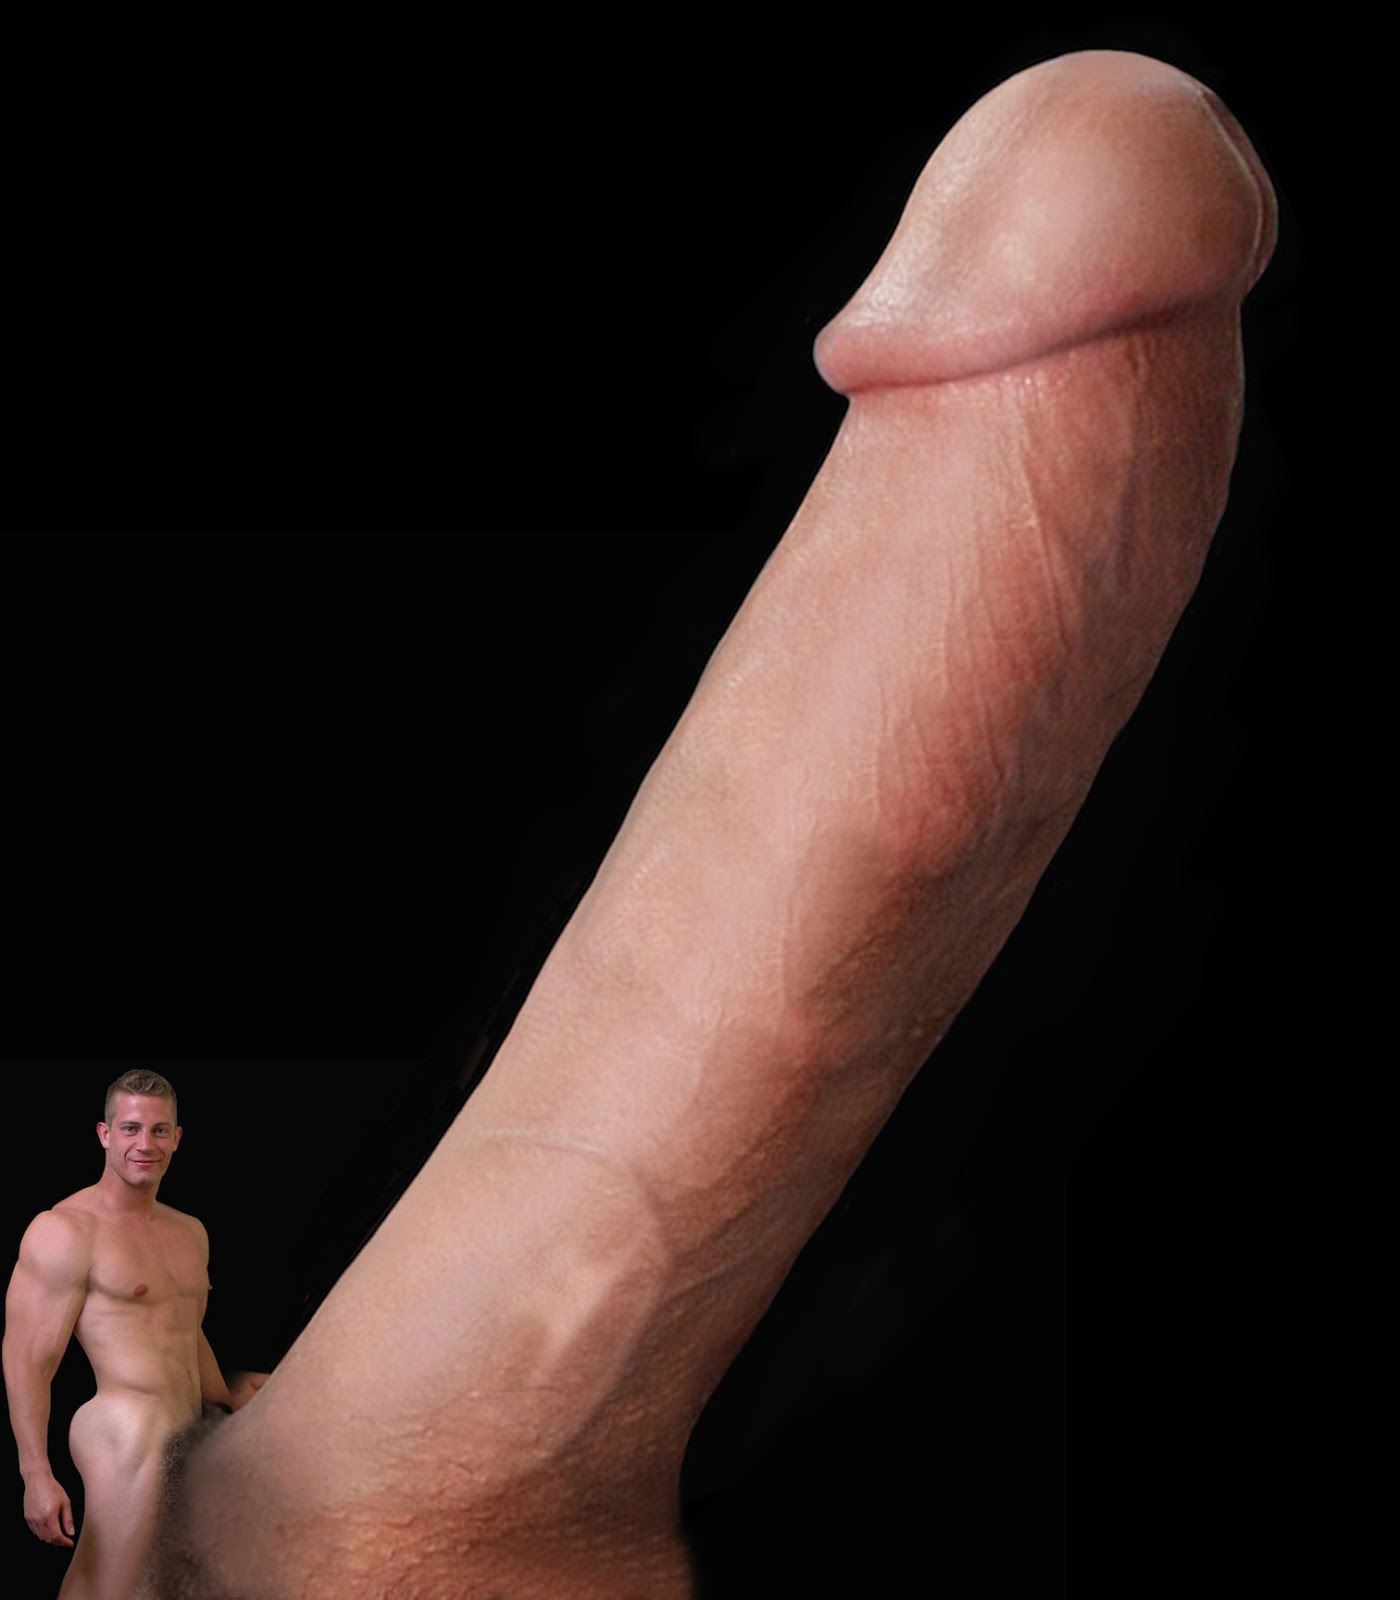 Giant naked dicks